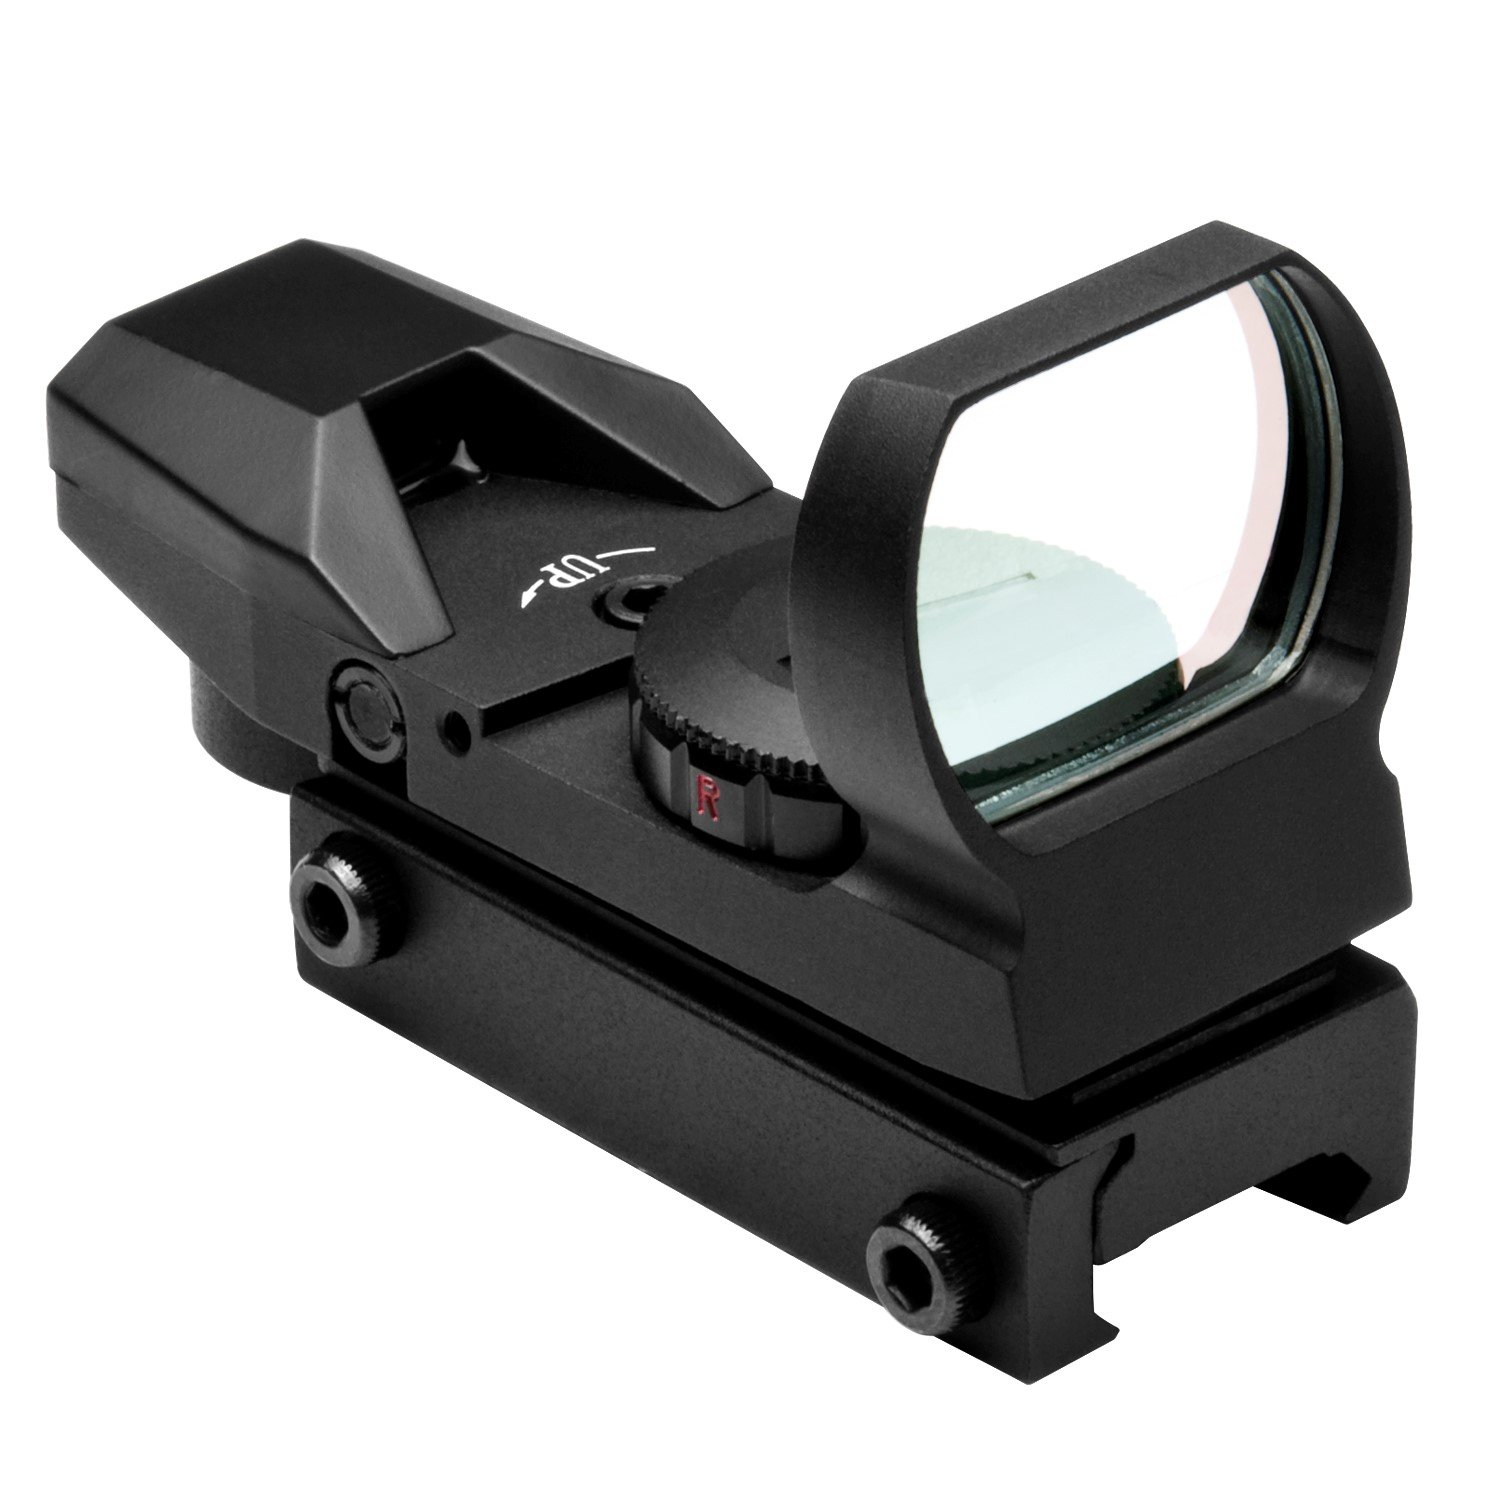 NcStar Red and Green Dot Reflex Sight/4 Different Reticles/Weaver Base (D4RGB), Black by NcSTAR